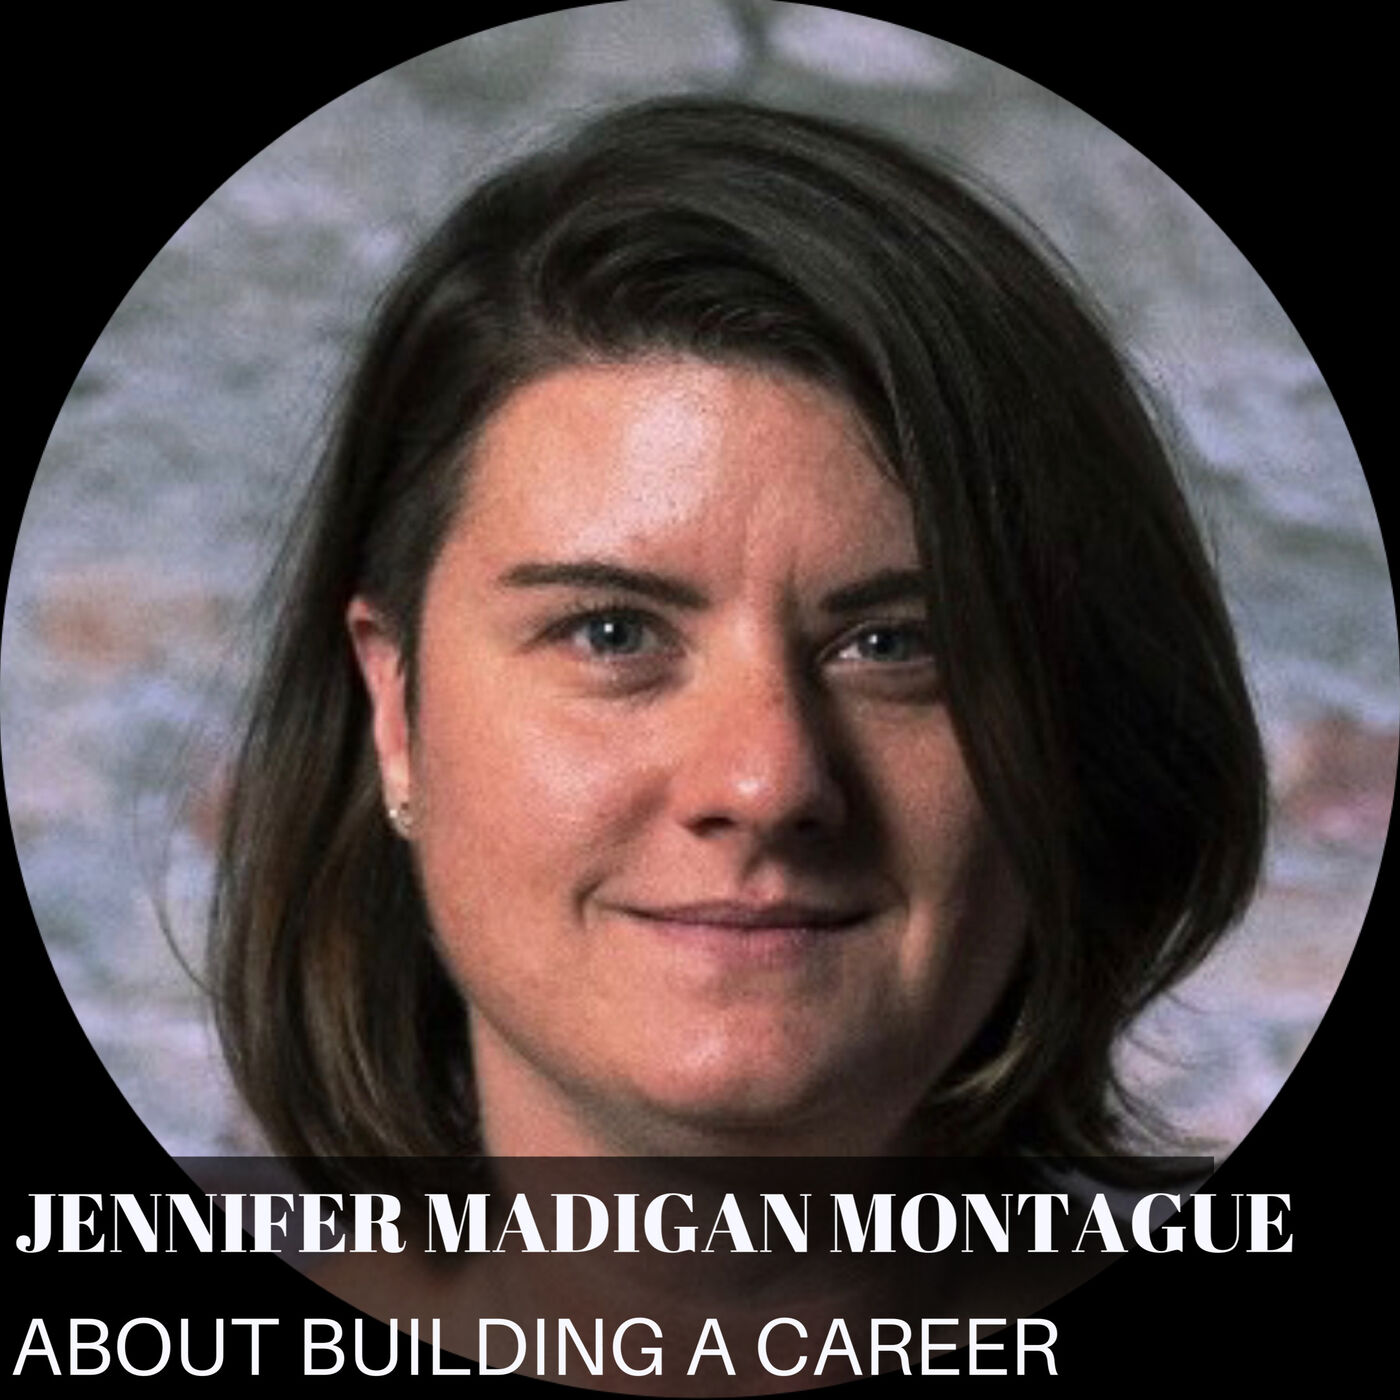 About building a career with Jennifer Madigan Montague